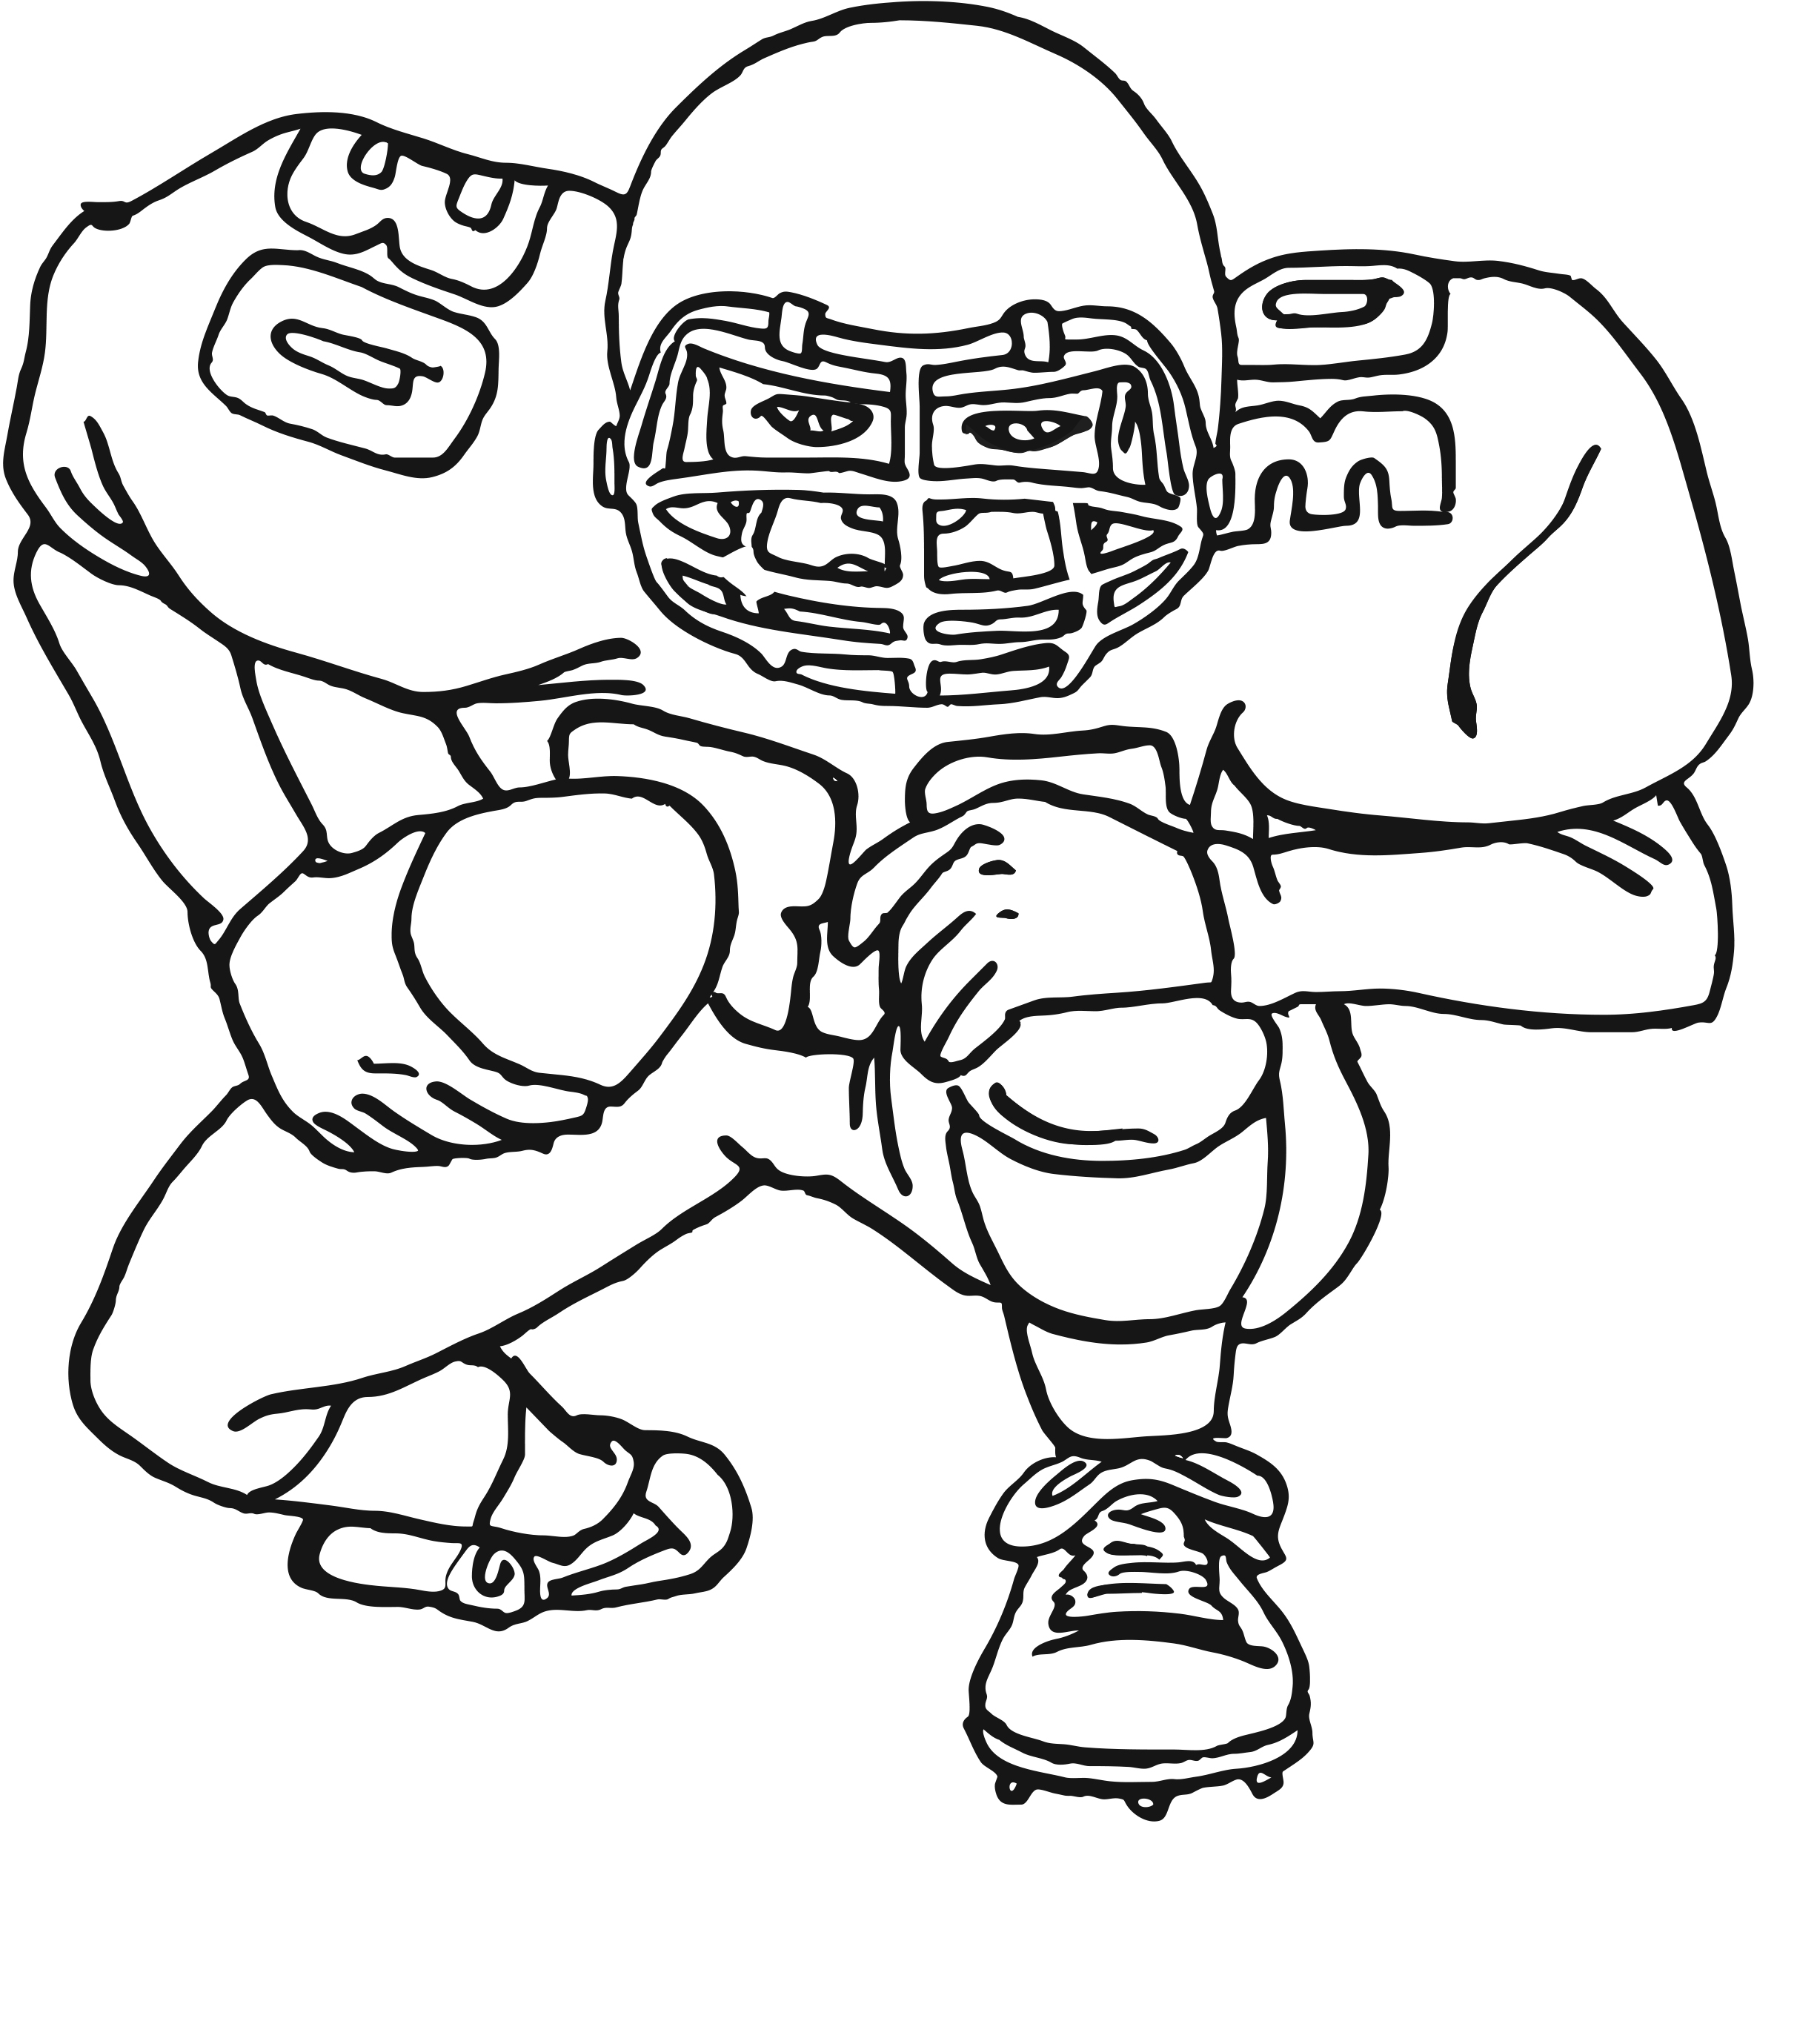 football color sheet free printable football coloring pages for kids football sheet color